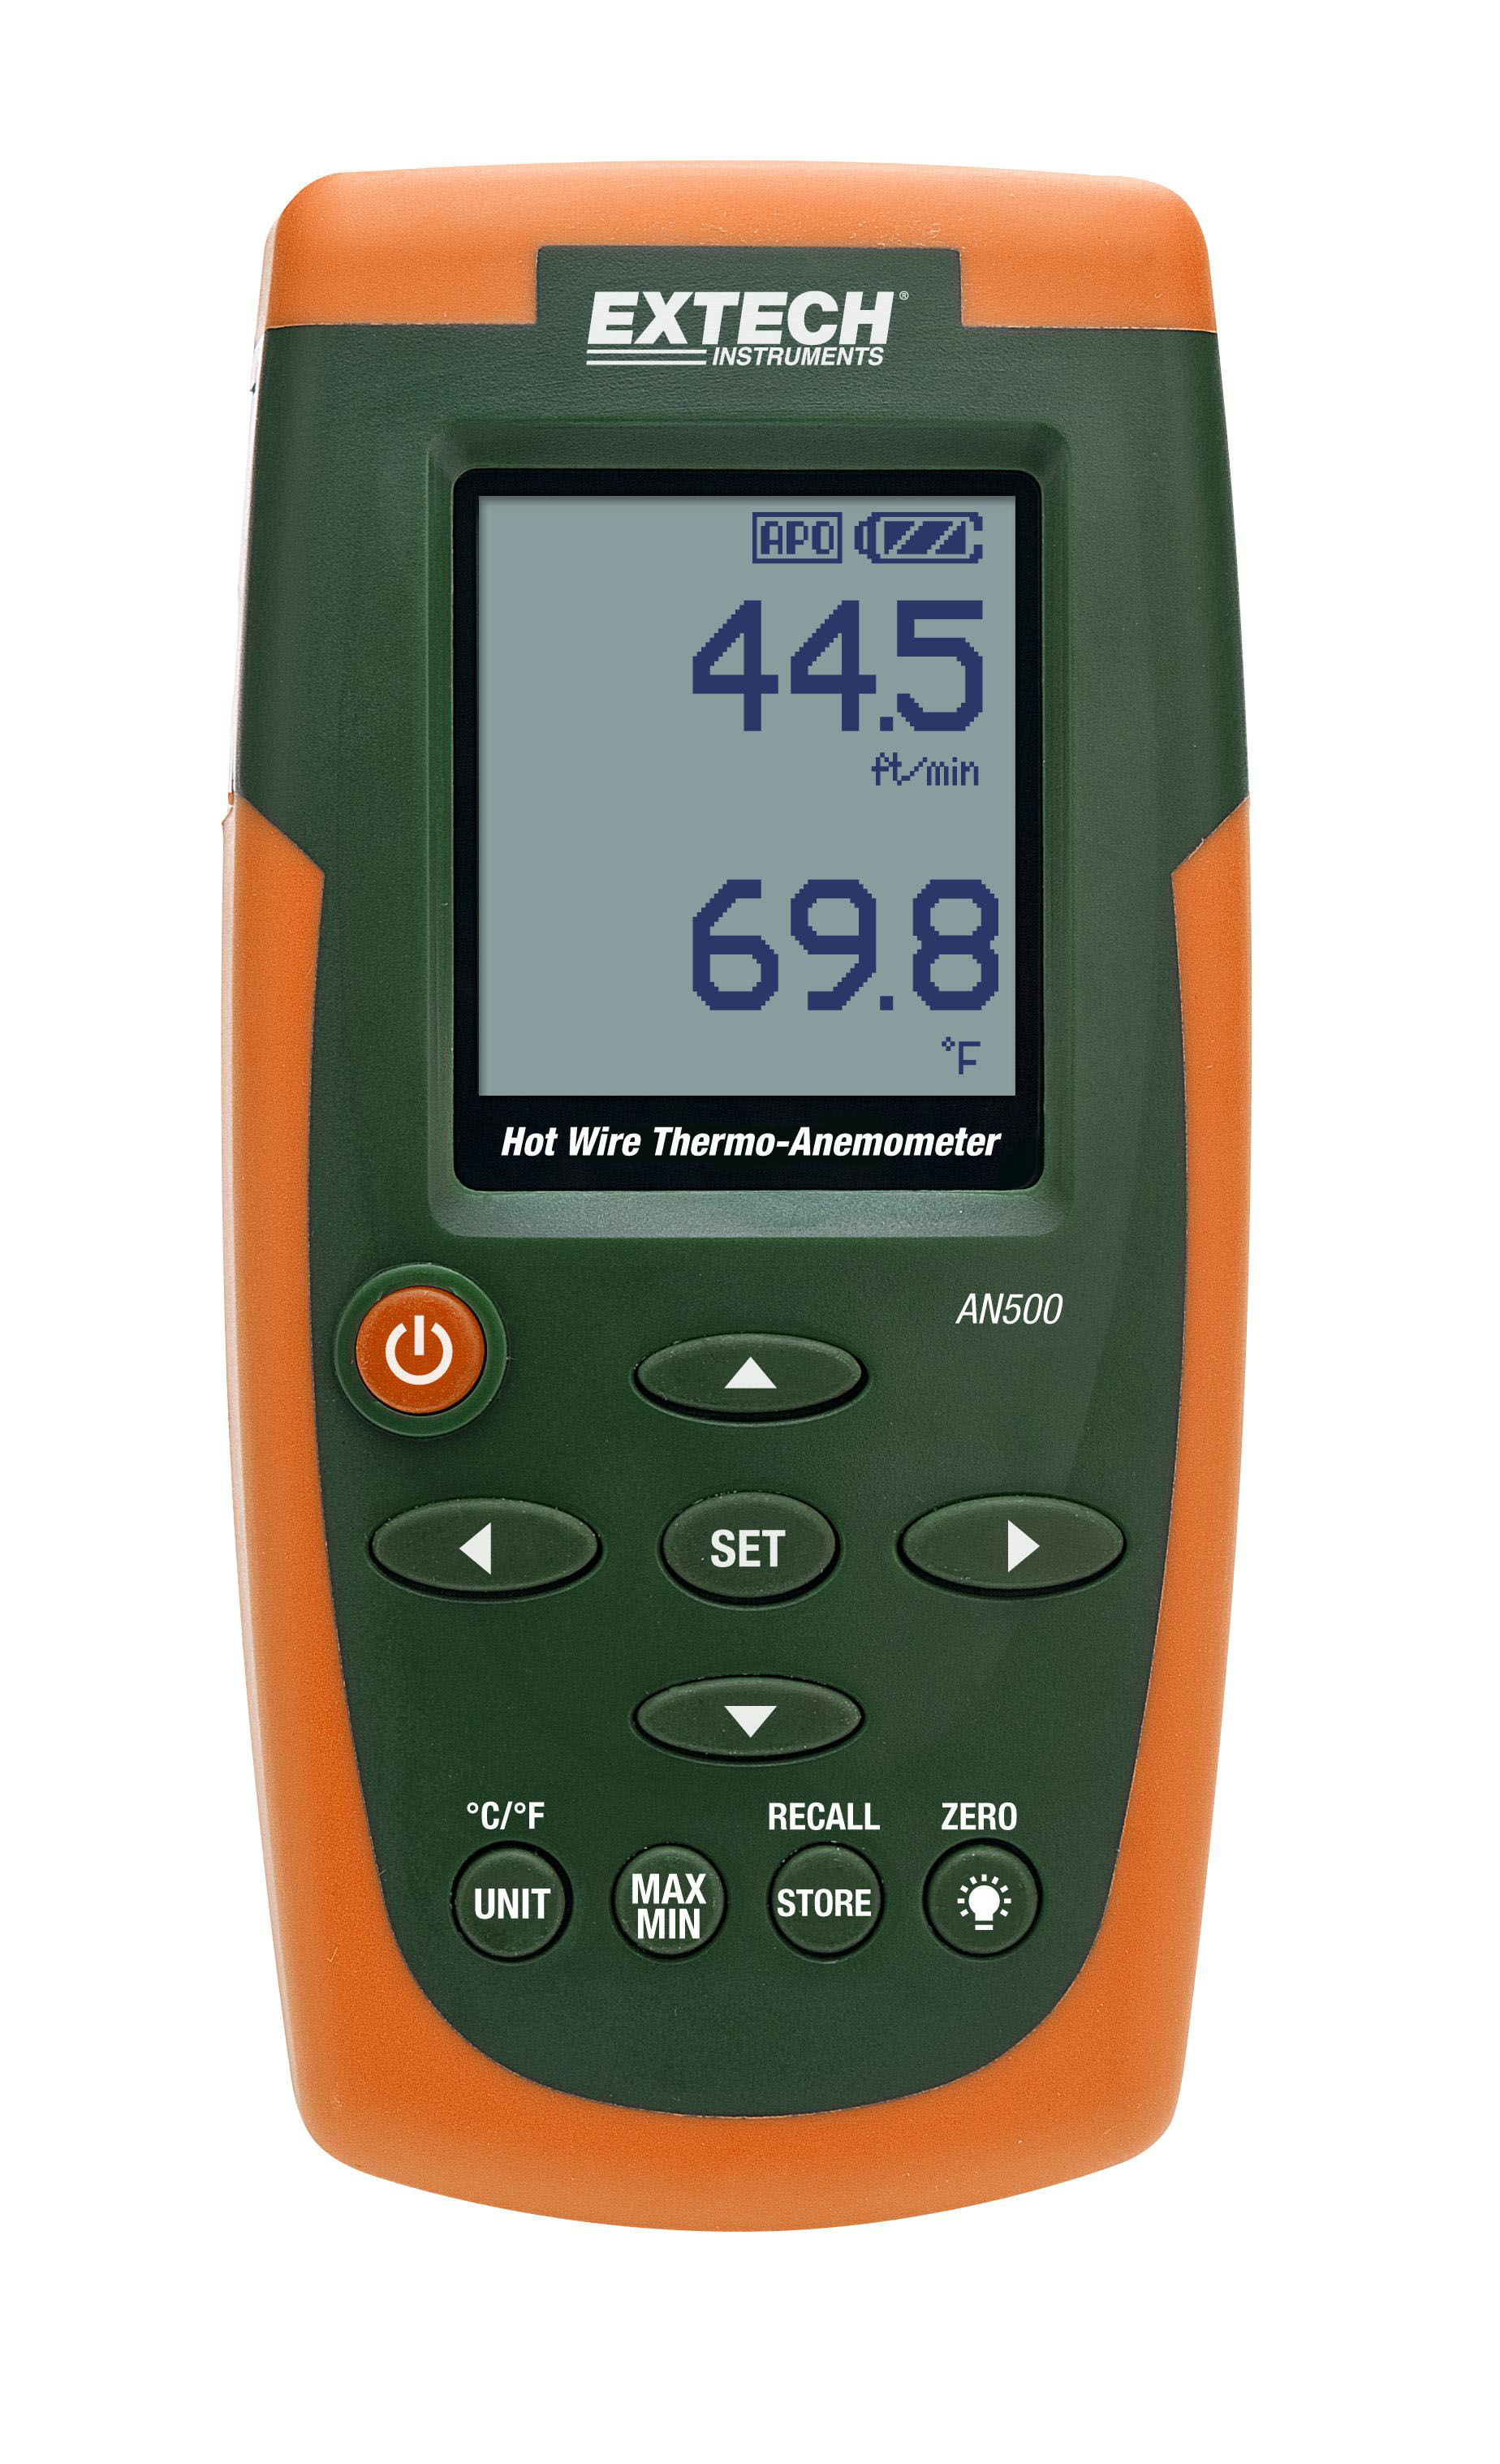 EXTECH AN500 - Hot Wire CFM/CMM Thermo-Anemometer